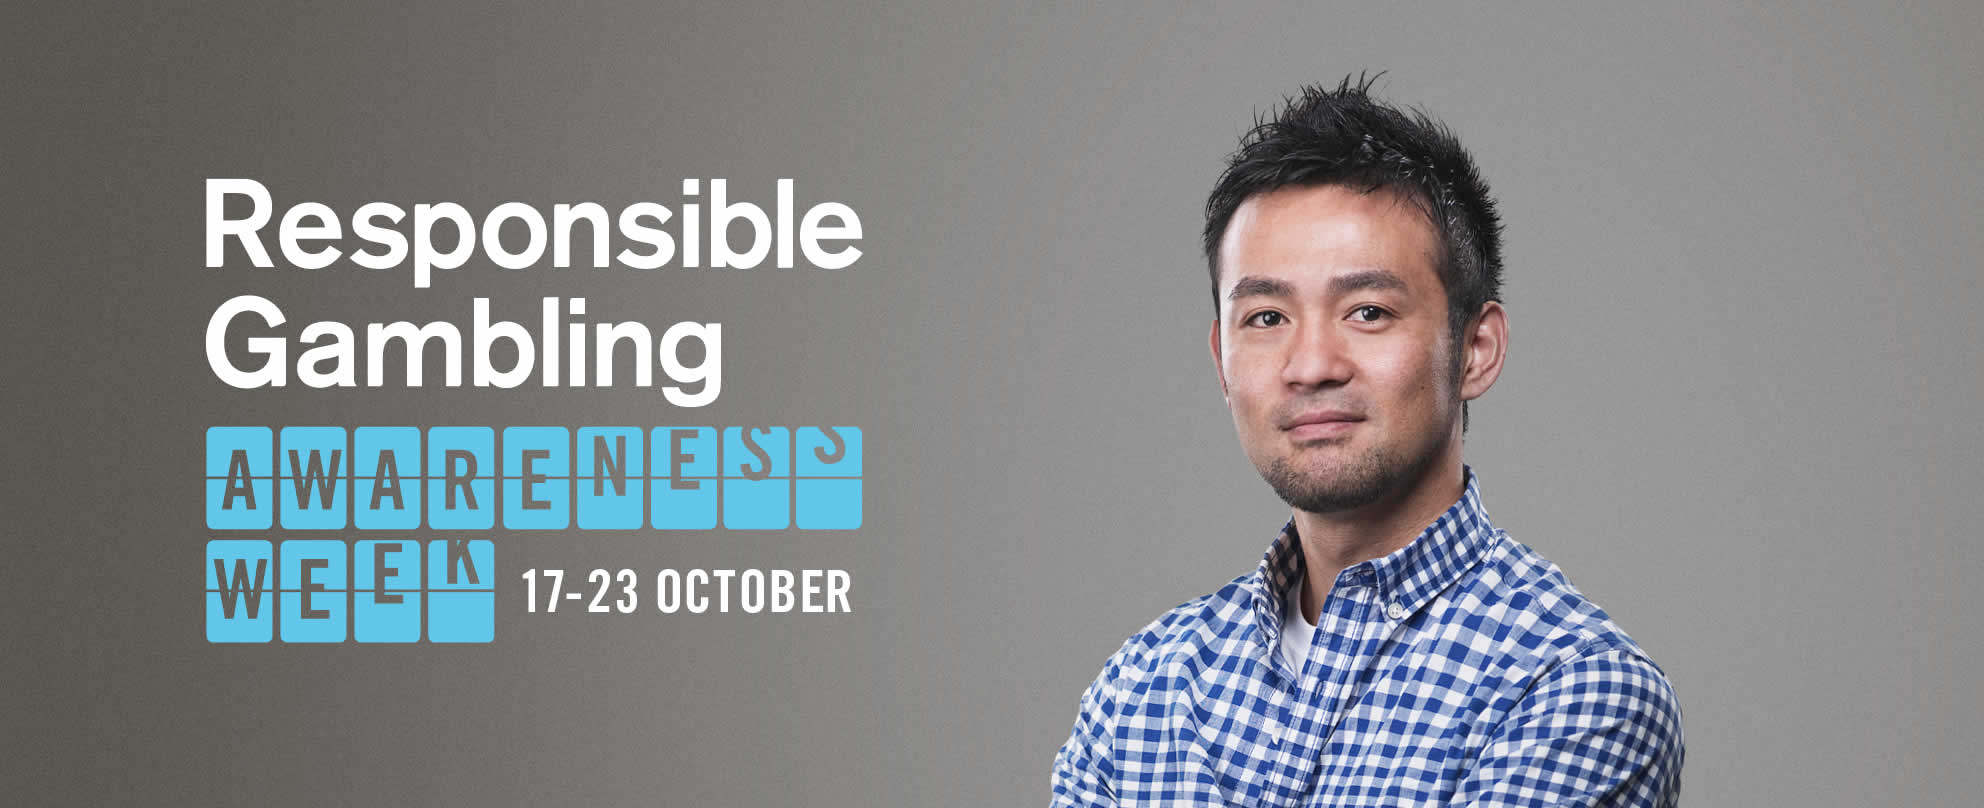 Young man looking confidently at camera with the text 'Responsible Gambling Awareness Week 12 - 23 October'